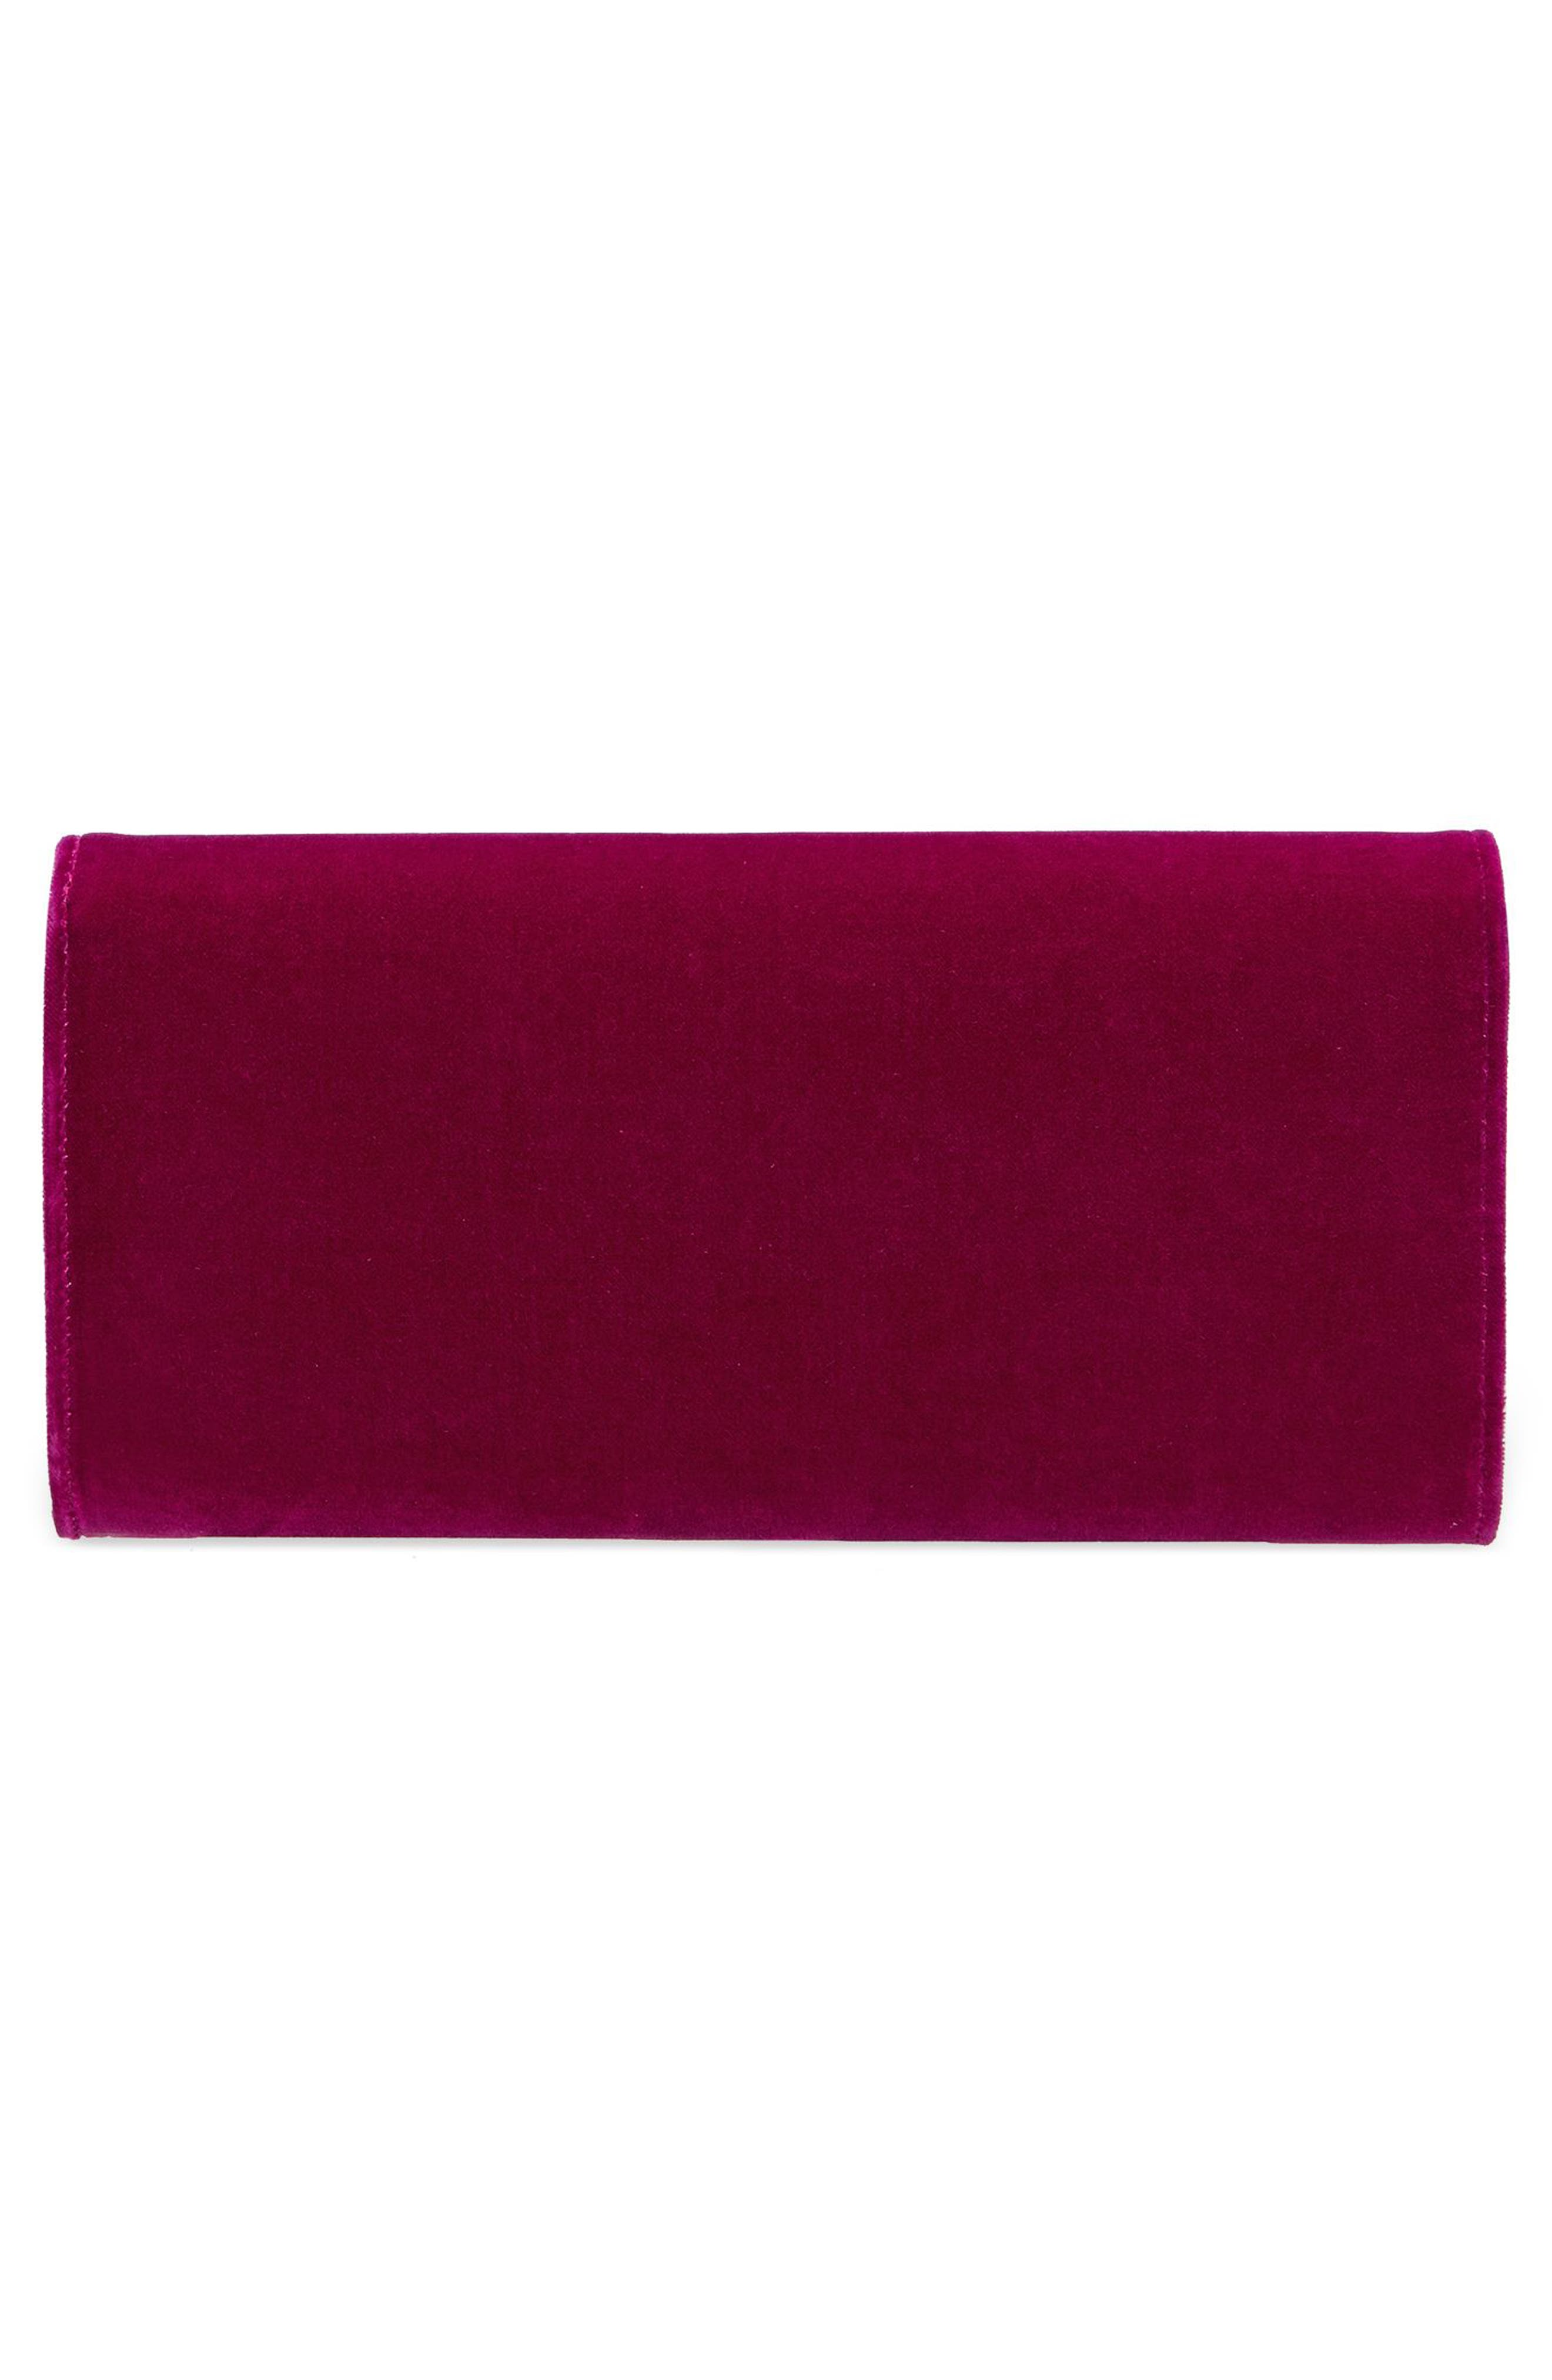 Alternate Image 2  - Gucci Dionysus Velvet Clutch